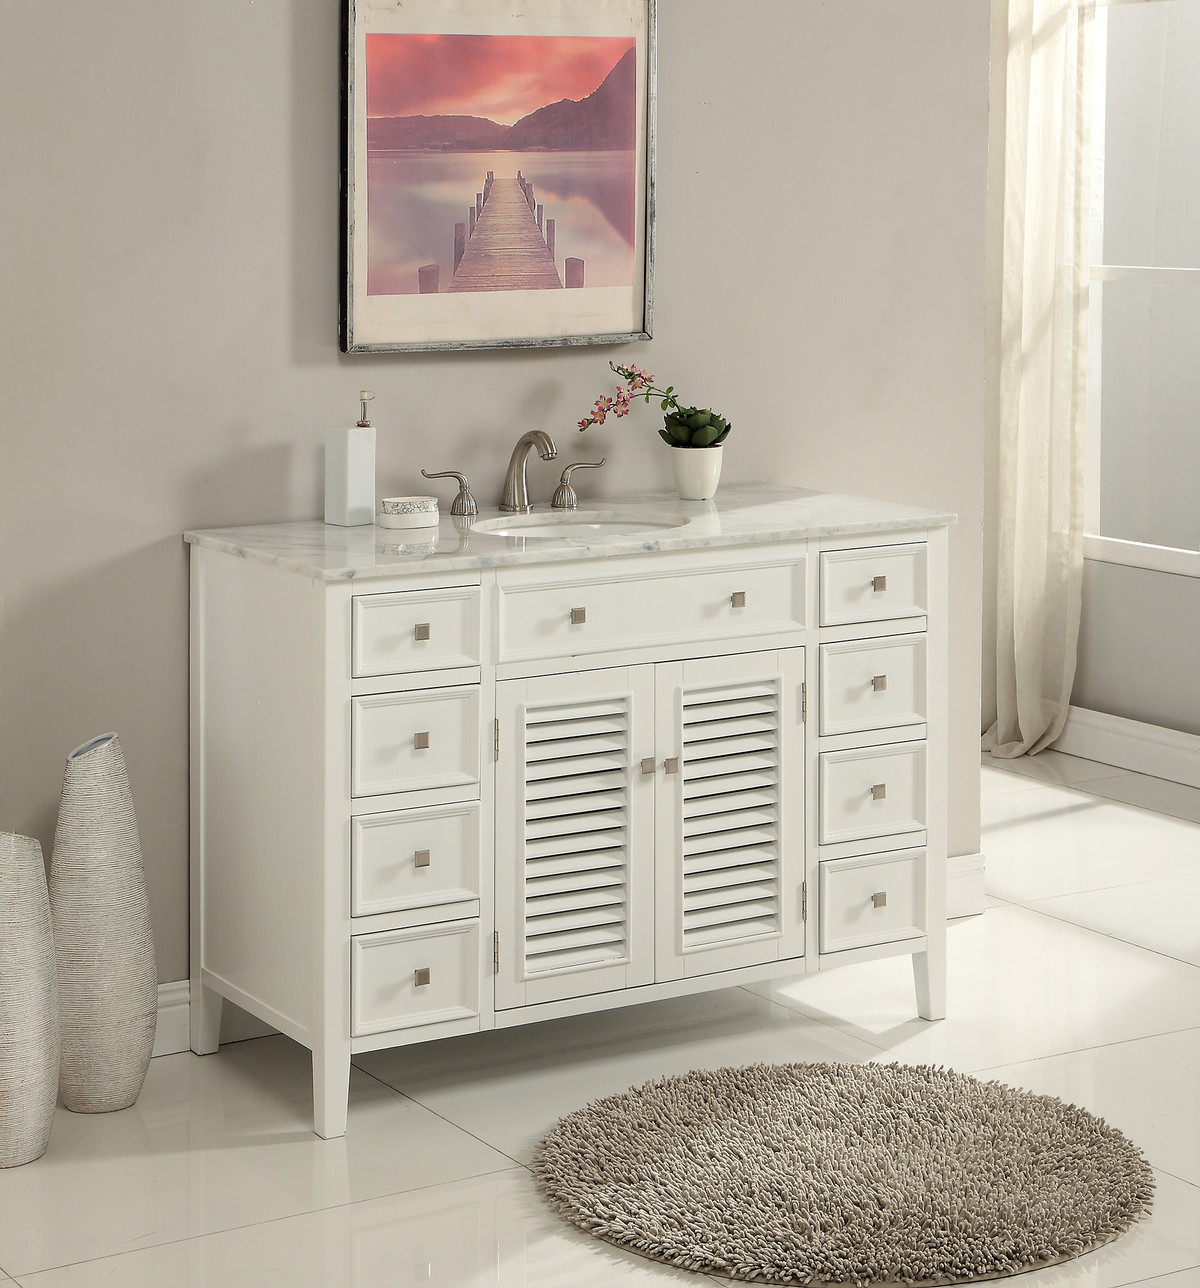 Nautical Style Bathroom Vanities: 48 Inch Bathroom Vanity Coastal Cottage Beach Style Pure